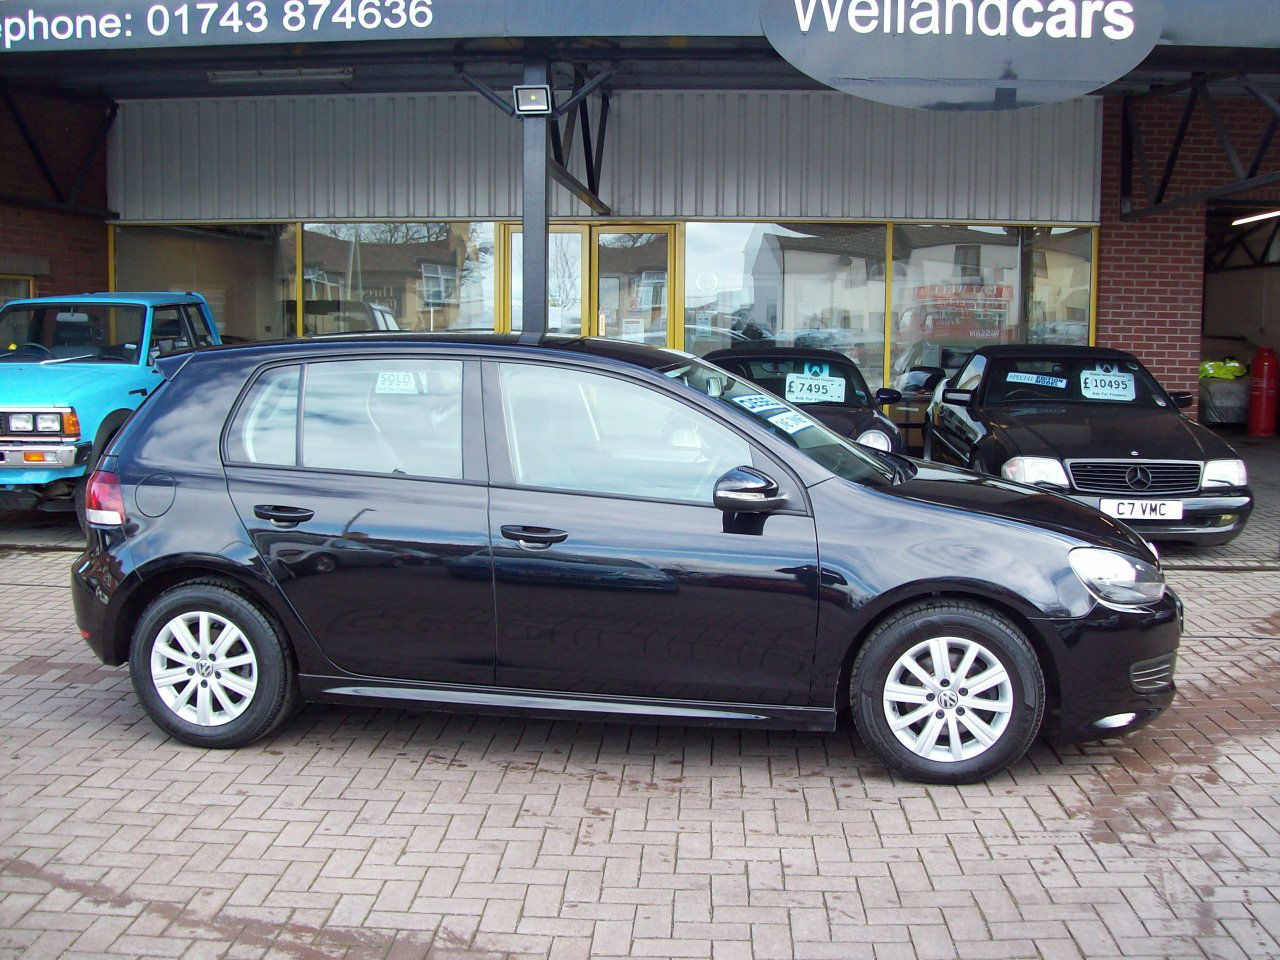 Volkswagen Golf 1.6 TDi 105 BlueMotion 5dr New Shape, Very Economical Free Tax, Upto 80 mpg. Hatchback Diesel Black at Welland Cars Shrewsbury